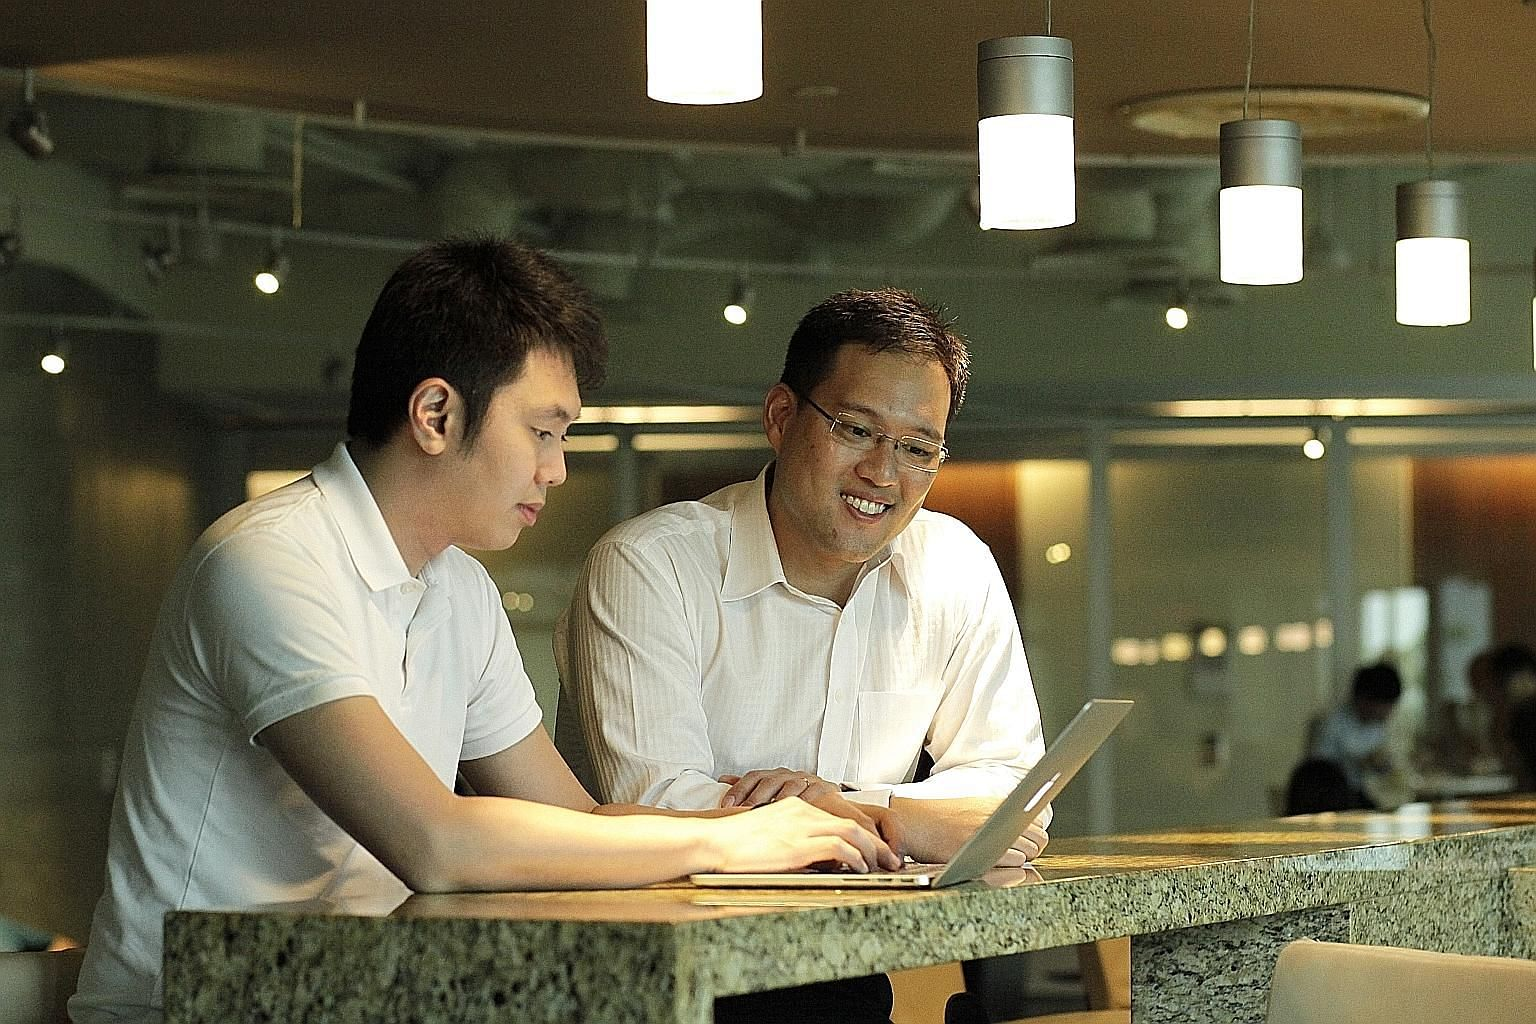 AdvocAid co-founders Tan En (far left) and Kenneth Goh. From calling up stakeholders such as hospitals to interviewing, filming and editing the profiles, AdvocAid takes care of each step of shaping a narrative to allow beneficiaries and donors the sm